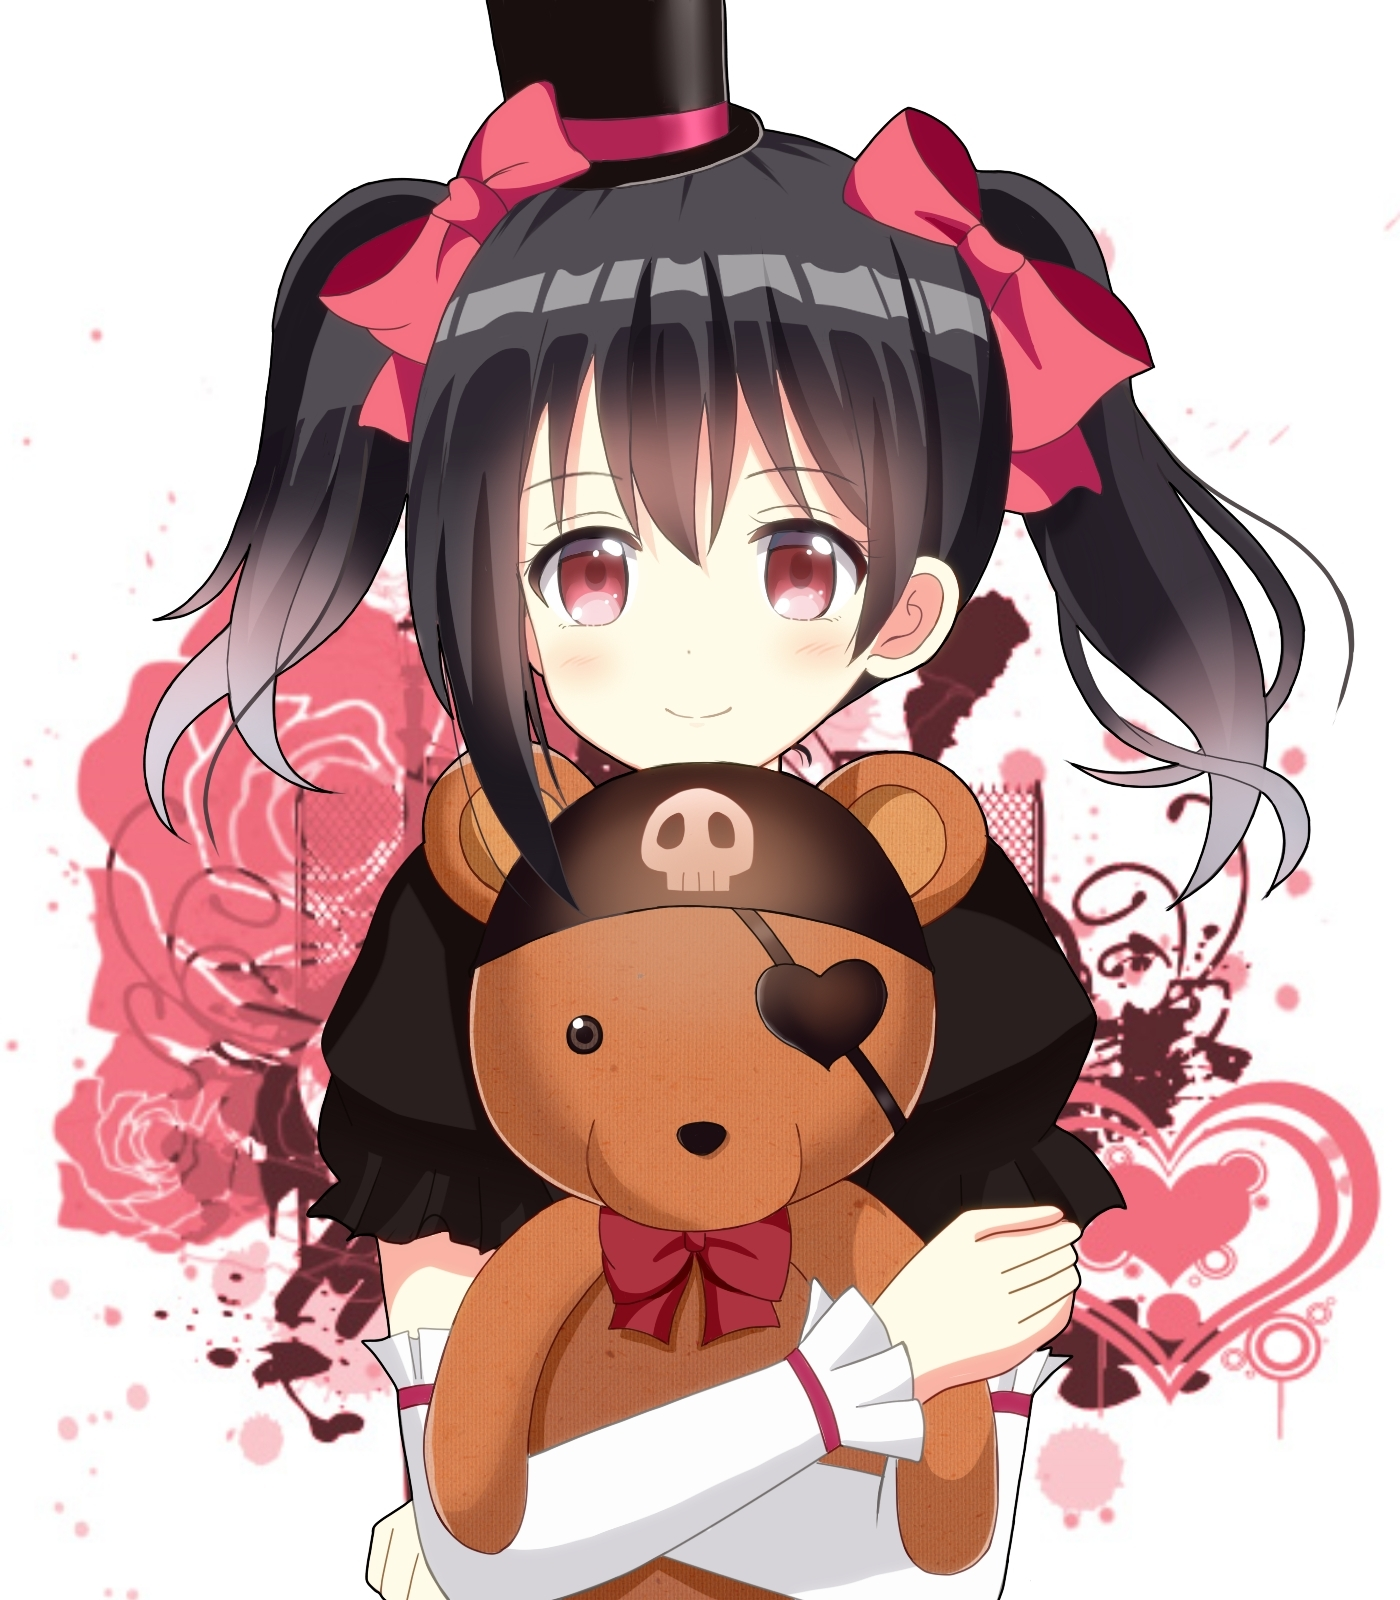 Wallpaper Love Live Tumblr : Nico Yazawa